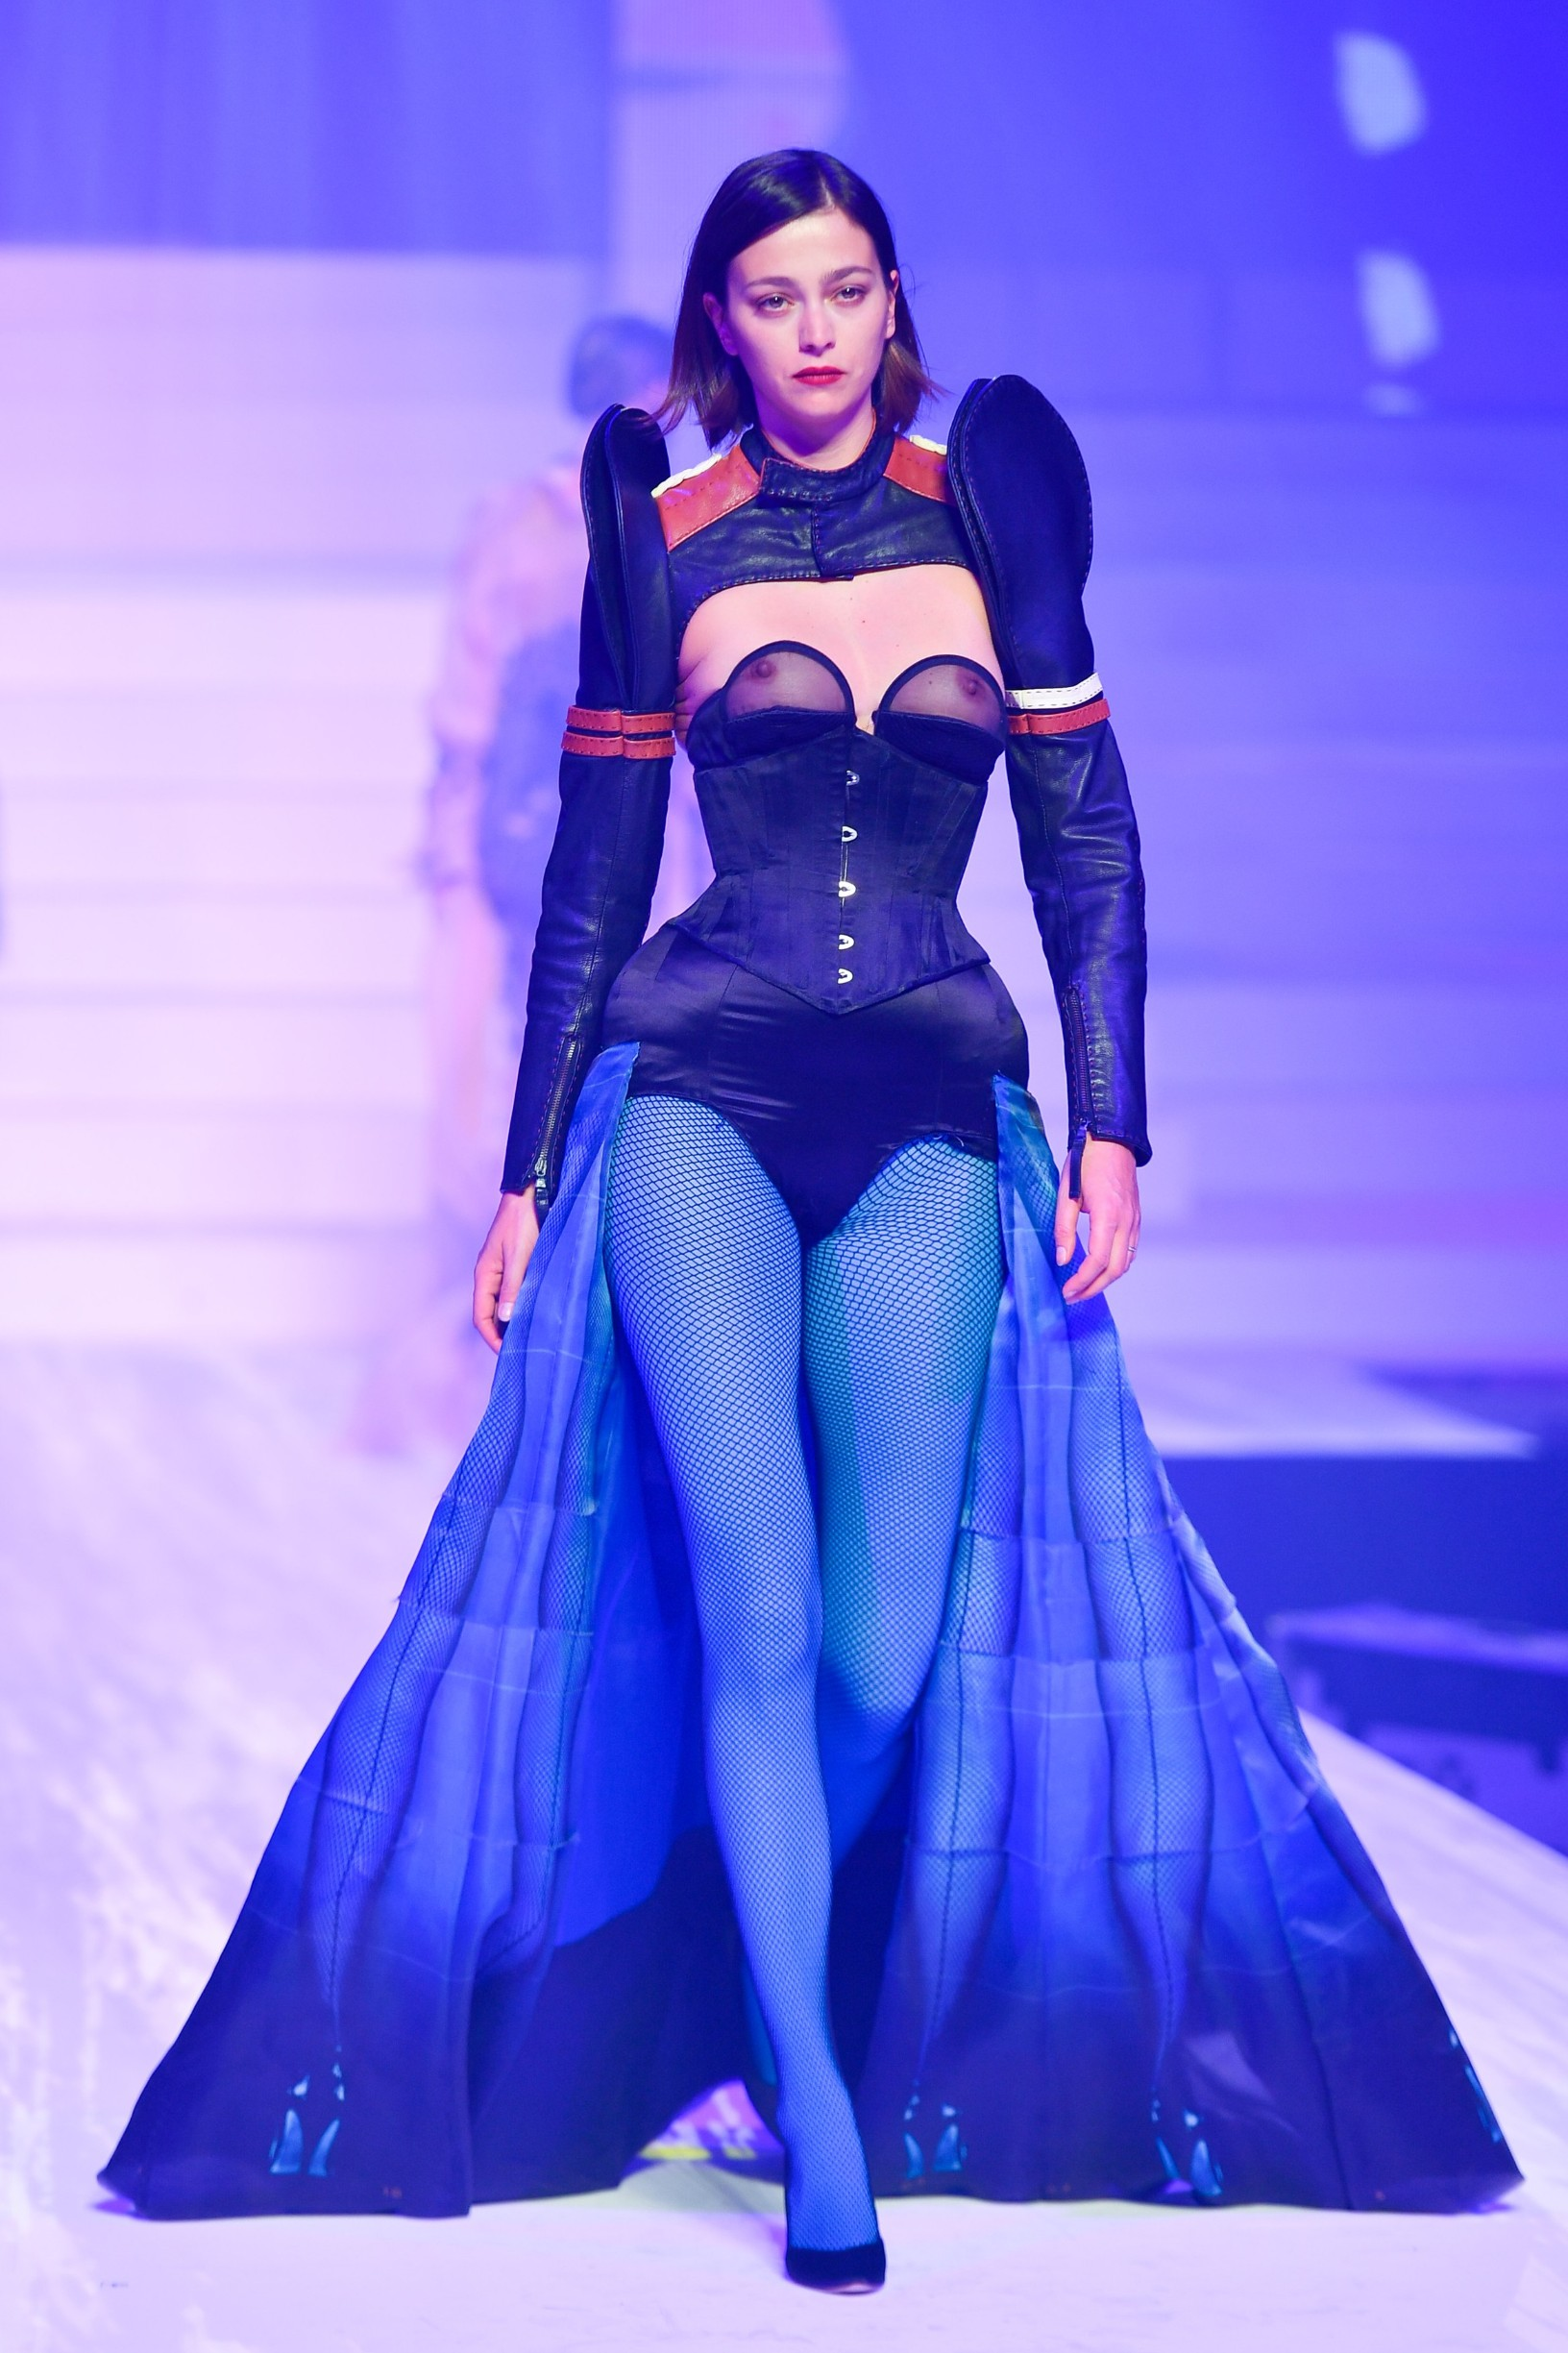 A model walks the runway during the last Fashion show by Jean-Paul Gaultier in Paris on January 22nd 2020, Image: 494344897, License: Rights-managed, Restrictions: , Model Release: no, Credit line: Pecquenard+Ferey / KCS Presse / Profimedia